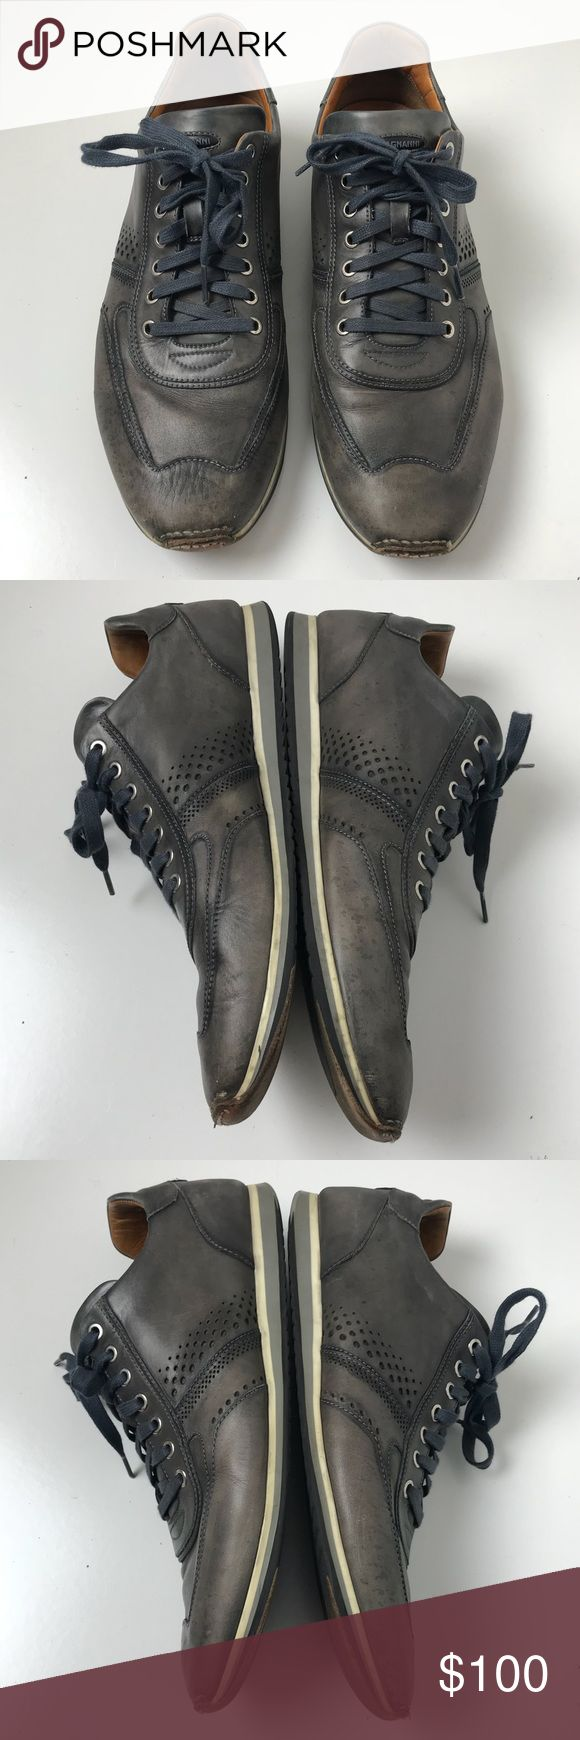 Magnanni | gray leather Pueblo sneaker shoes 12 Magnanni Pueblo style leather sn...